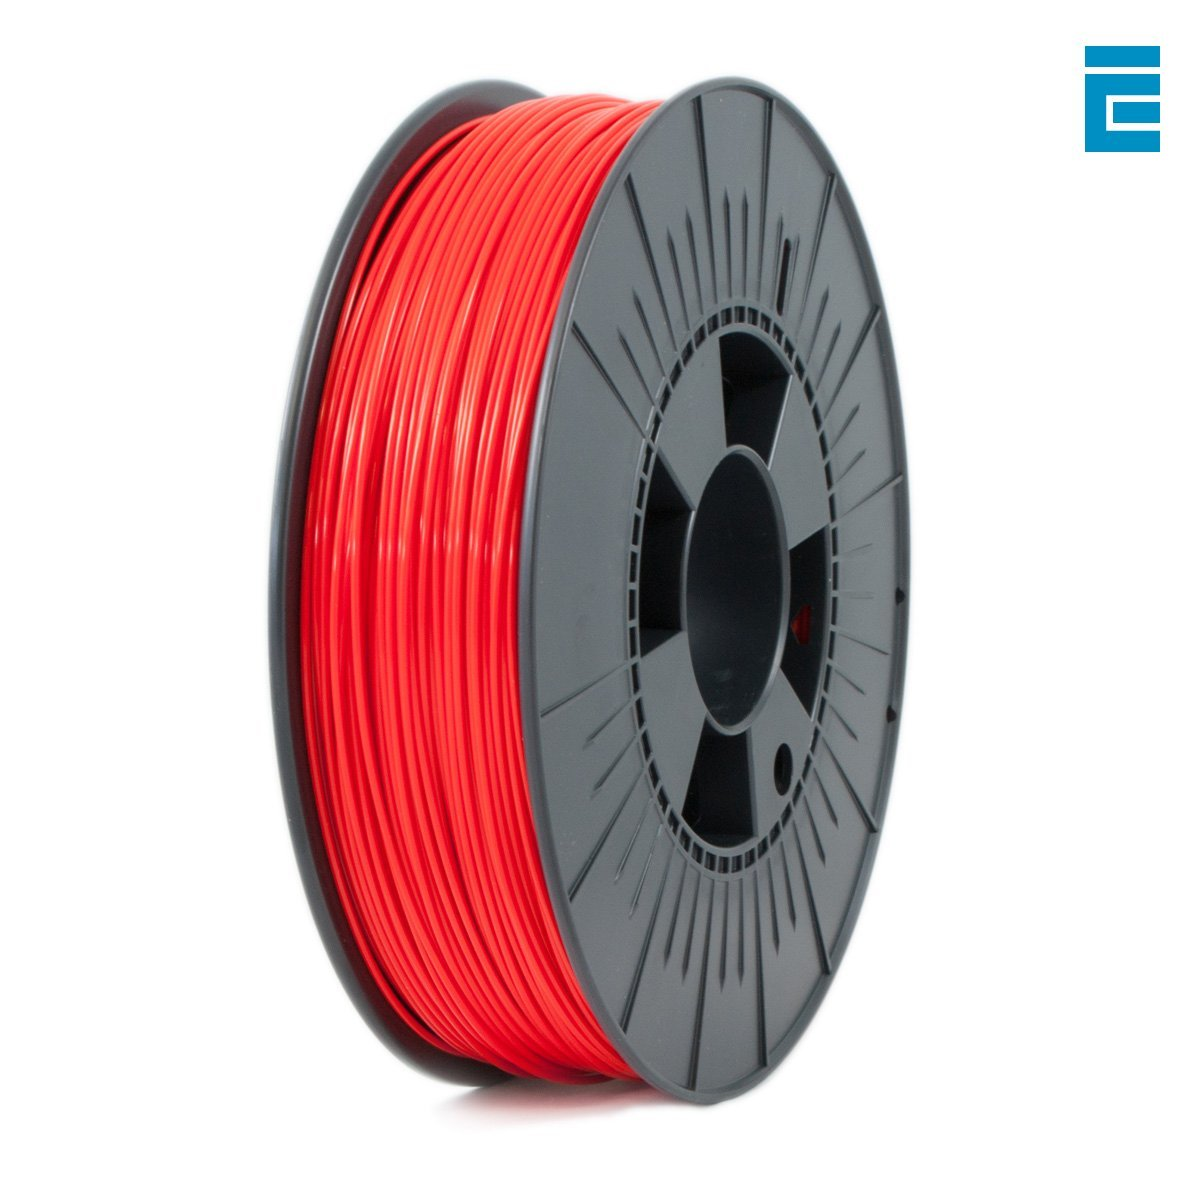 ICE FILAMENTS ICEFIL1ABS027 ABS Filament, 1.75 mm, 0.75 kg, Romantic Red DF